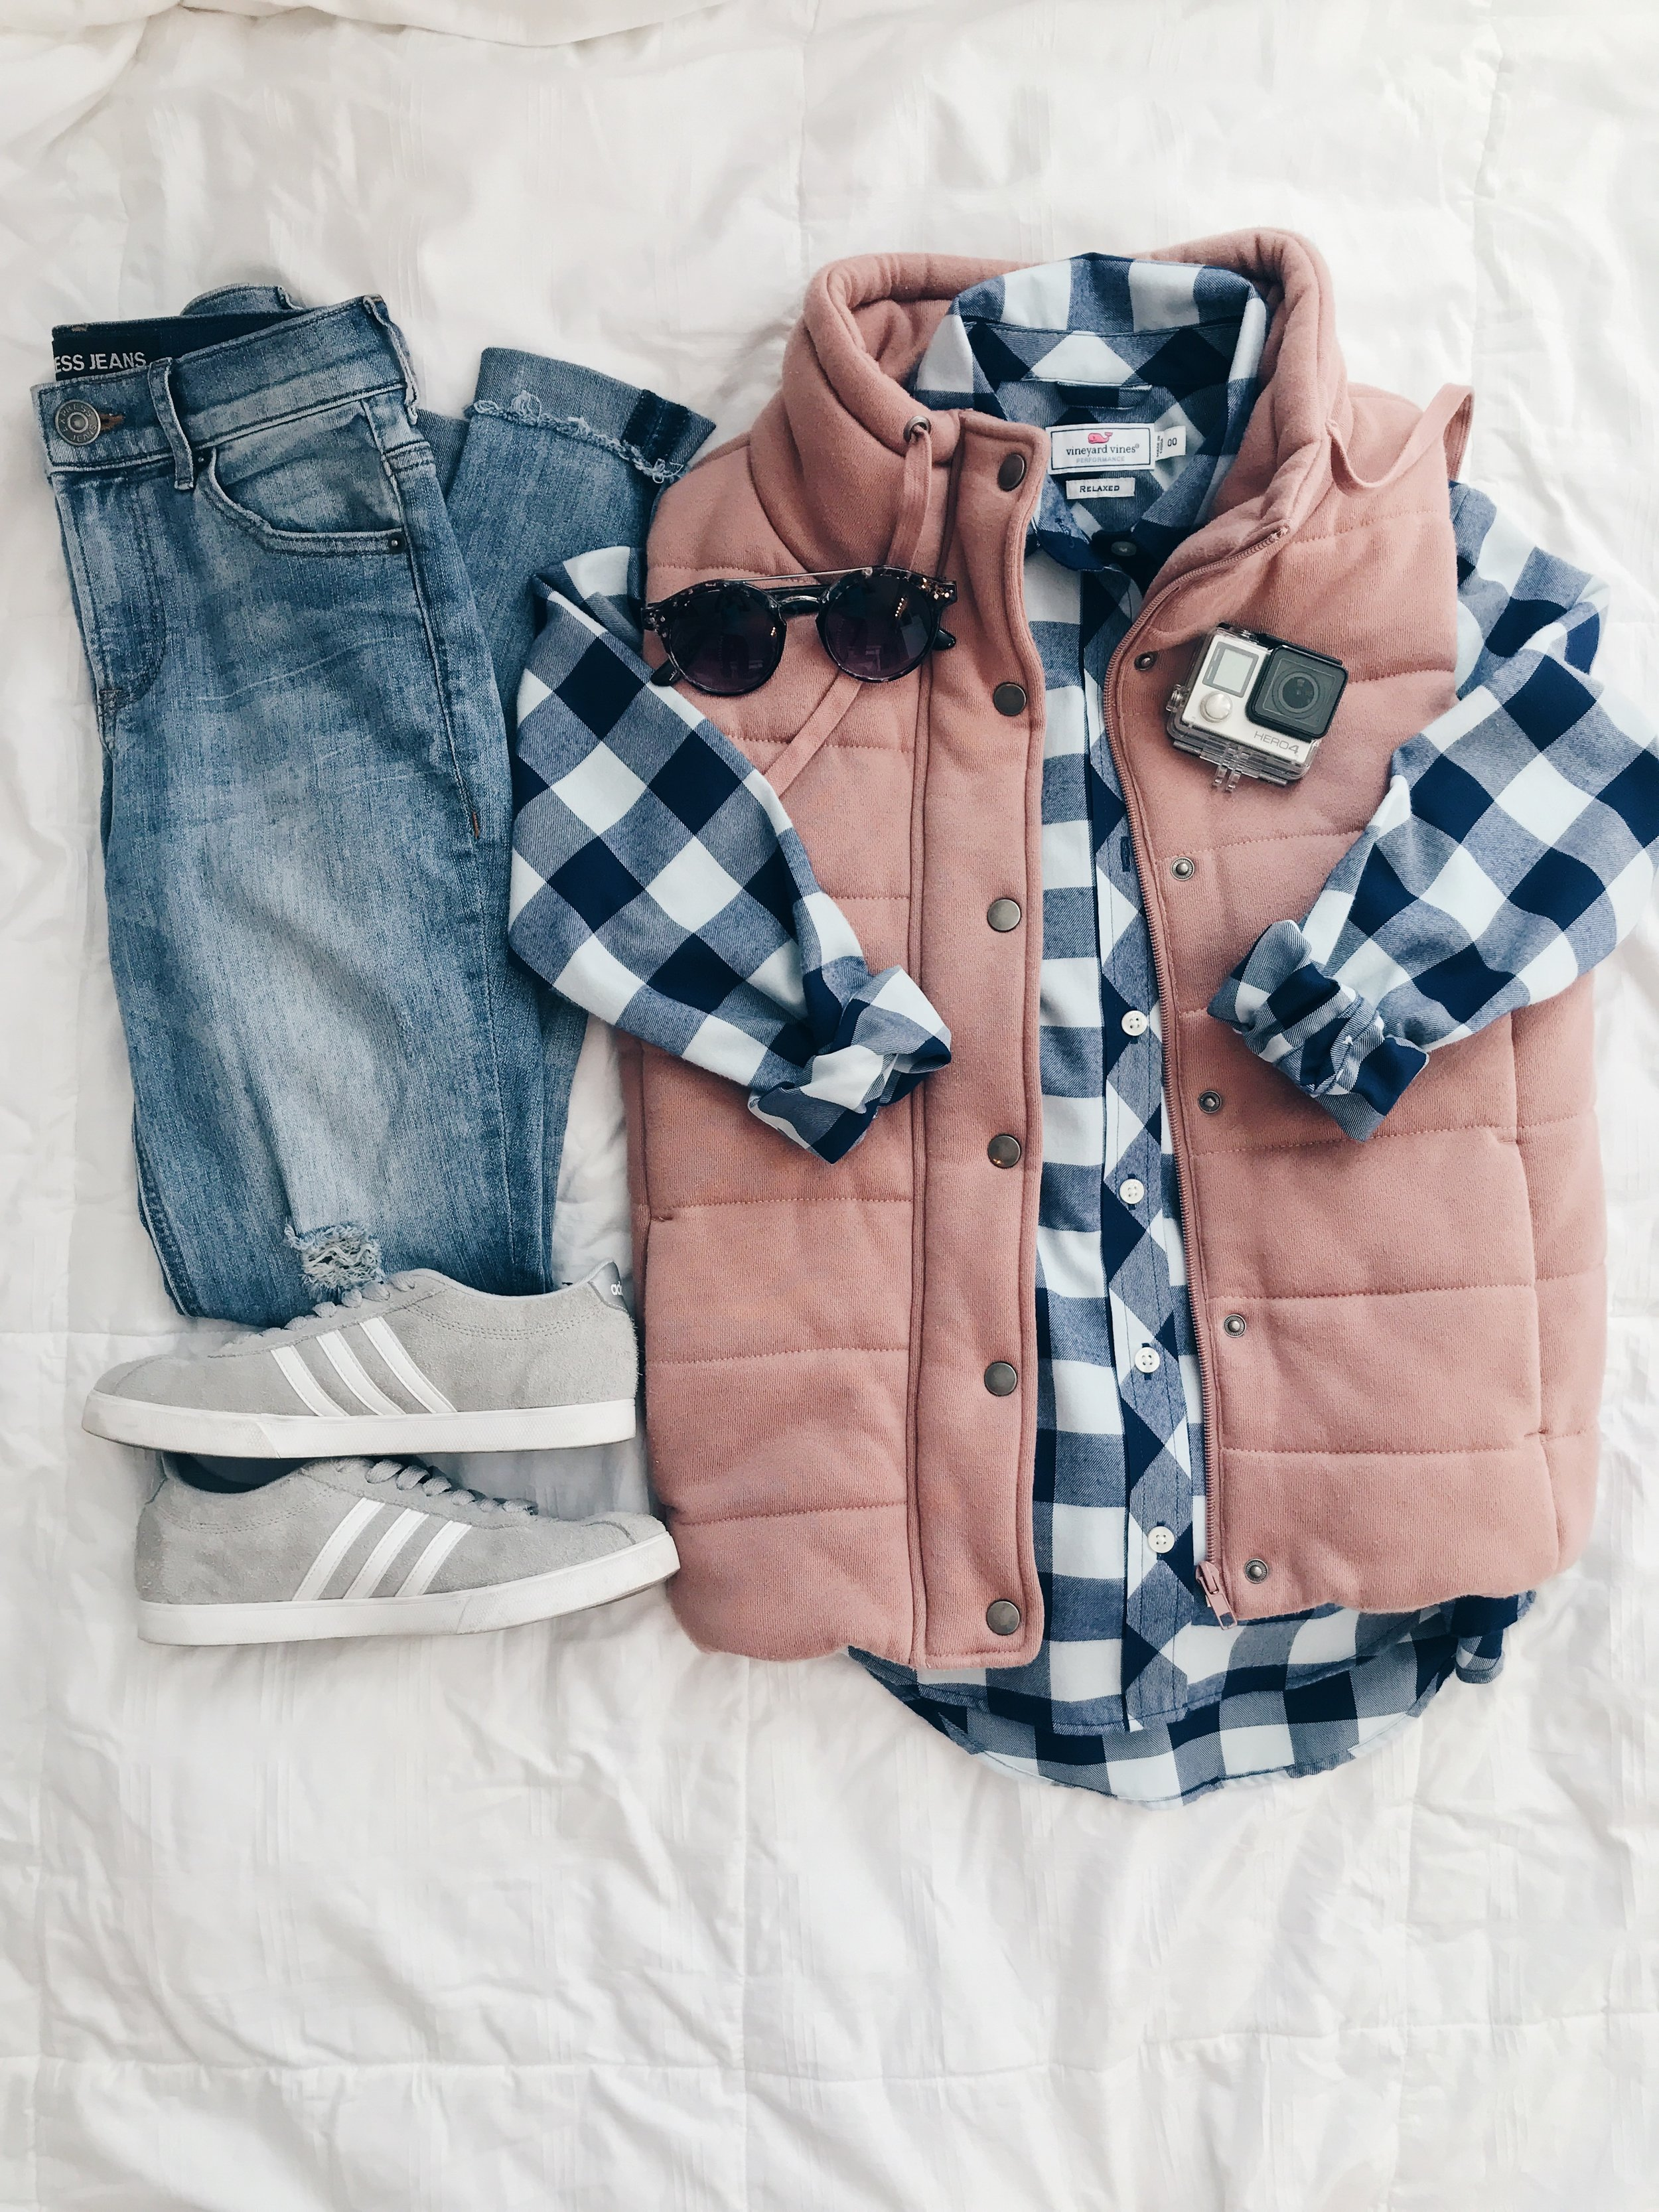 - Vest(Click here for black or here for wine, too) || Flannel(this one is from Vineyard Vines, but click here for one from Magnolia) || Jeans || Adidas Sneakers || Sunglasses*Use the code TRENDY10 for 10% off October 2 - October 9 at Magnolia Boutique.